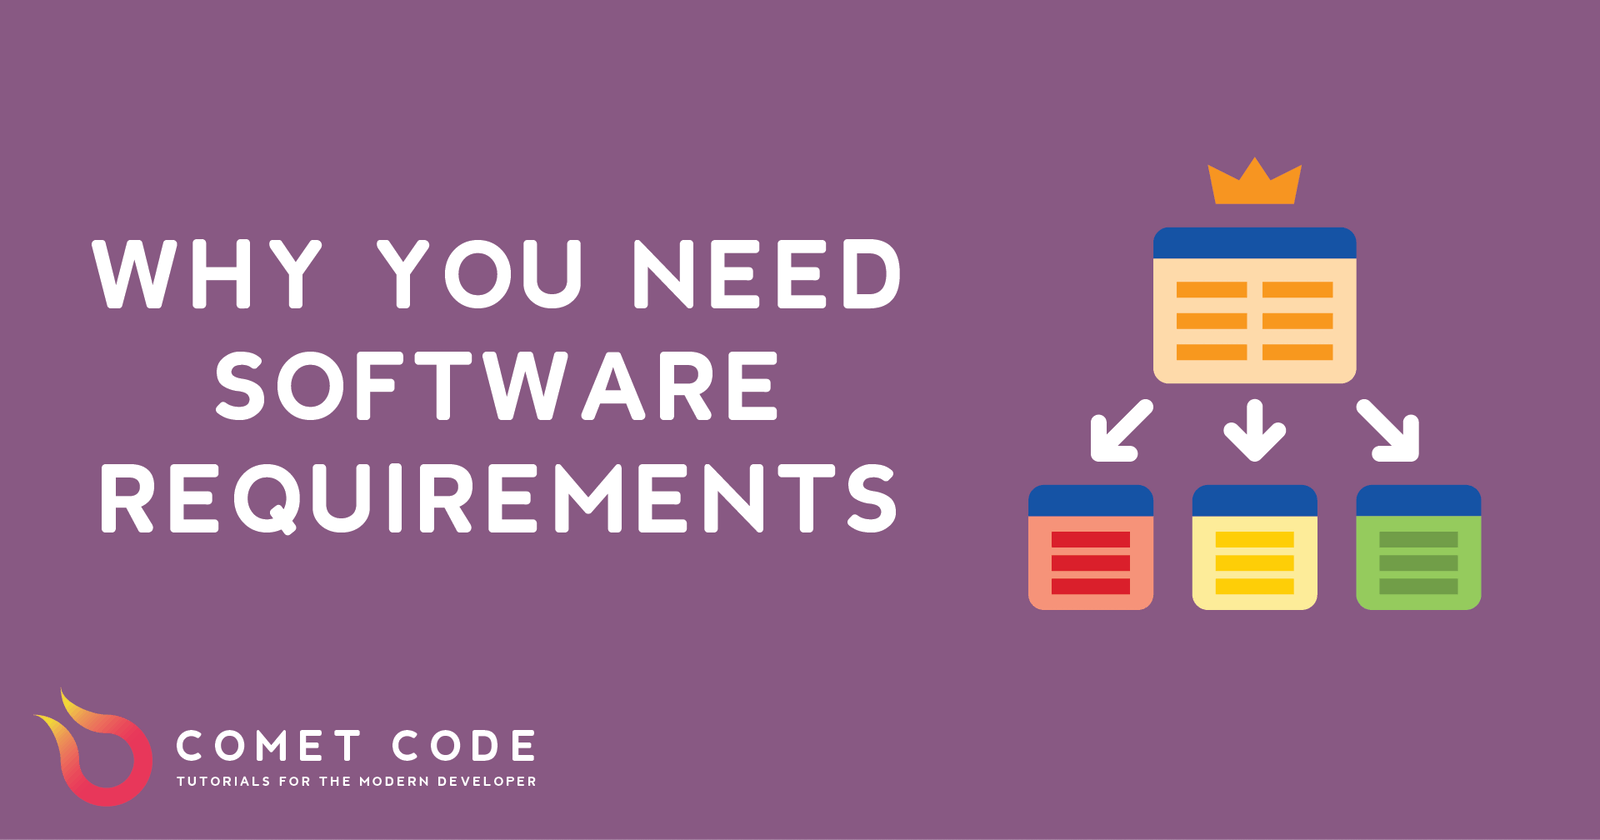 Why you need Software Requirements for your Application